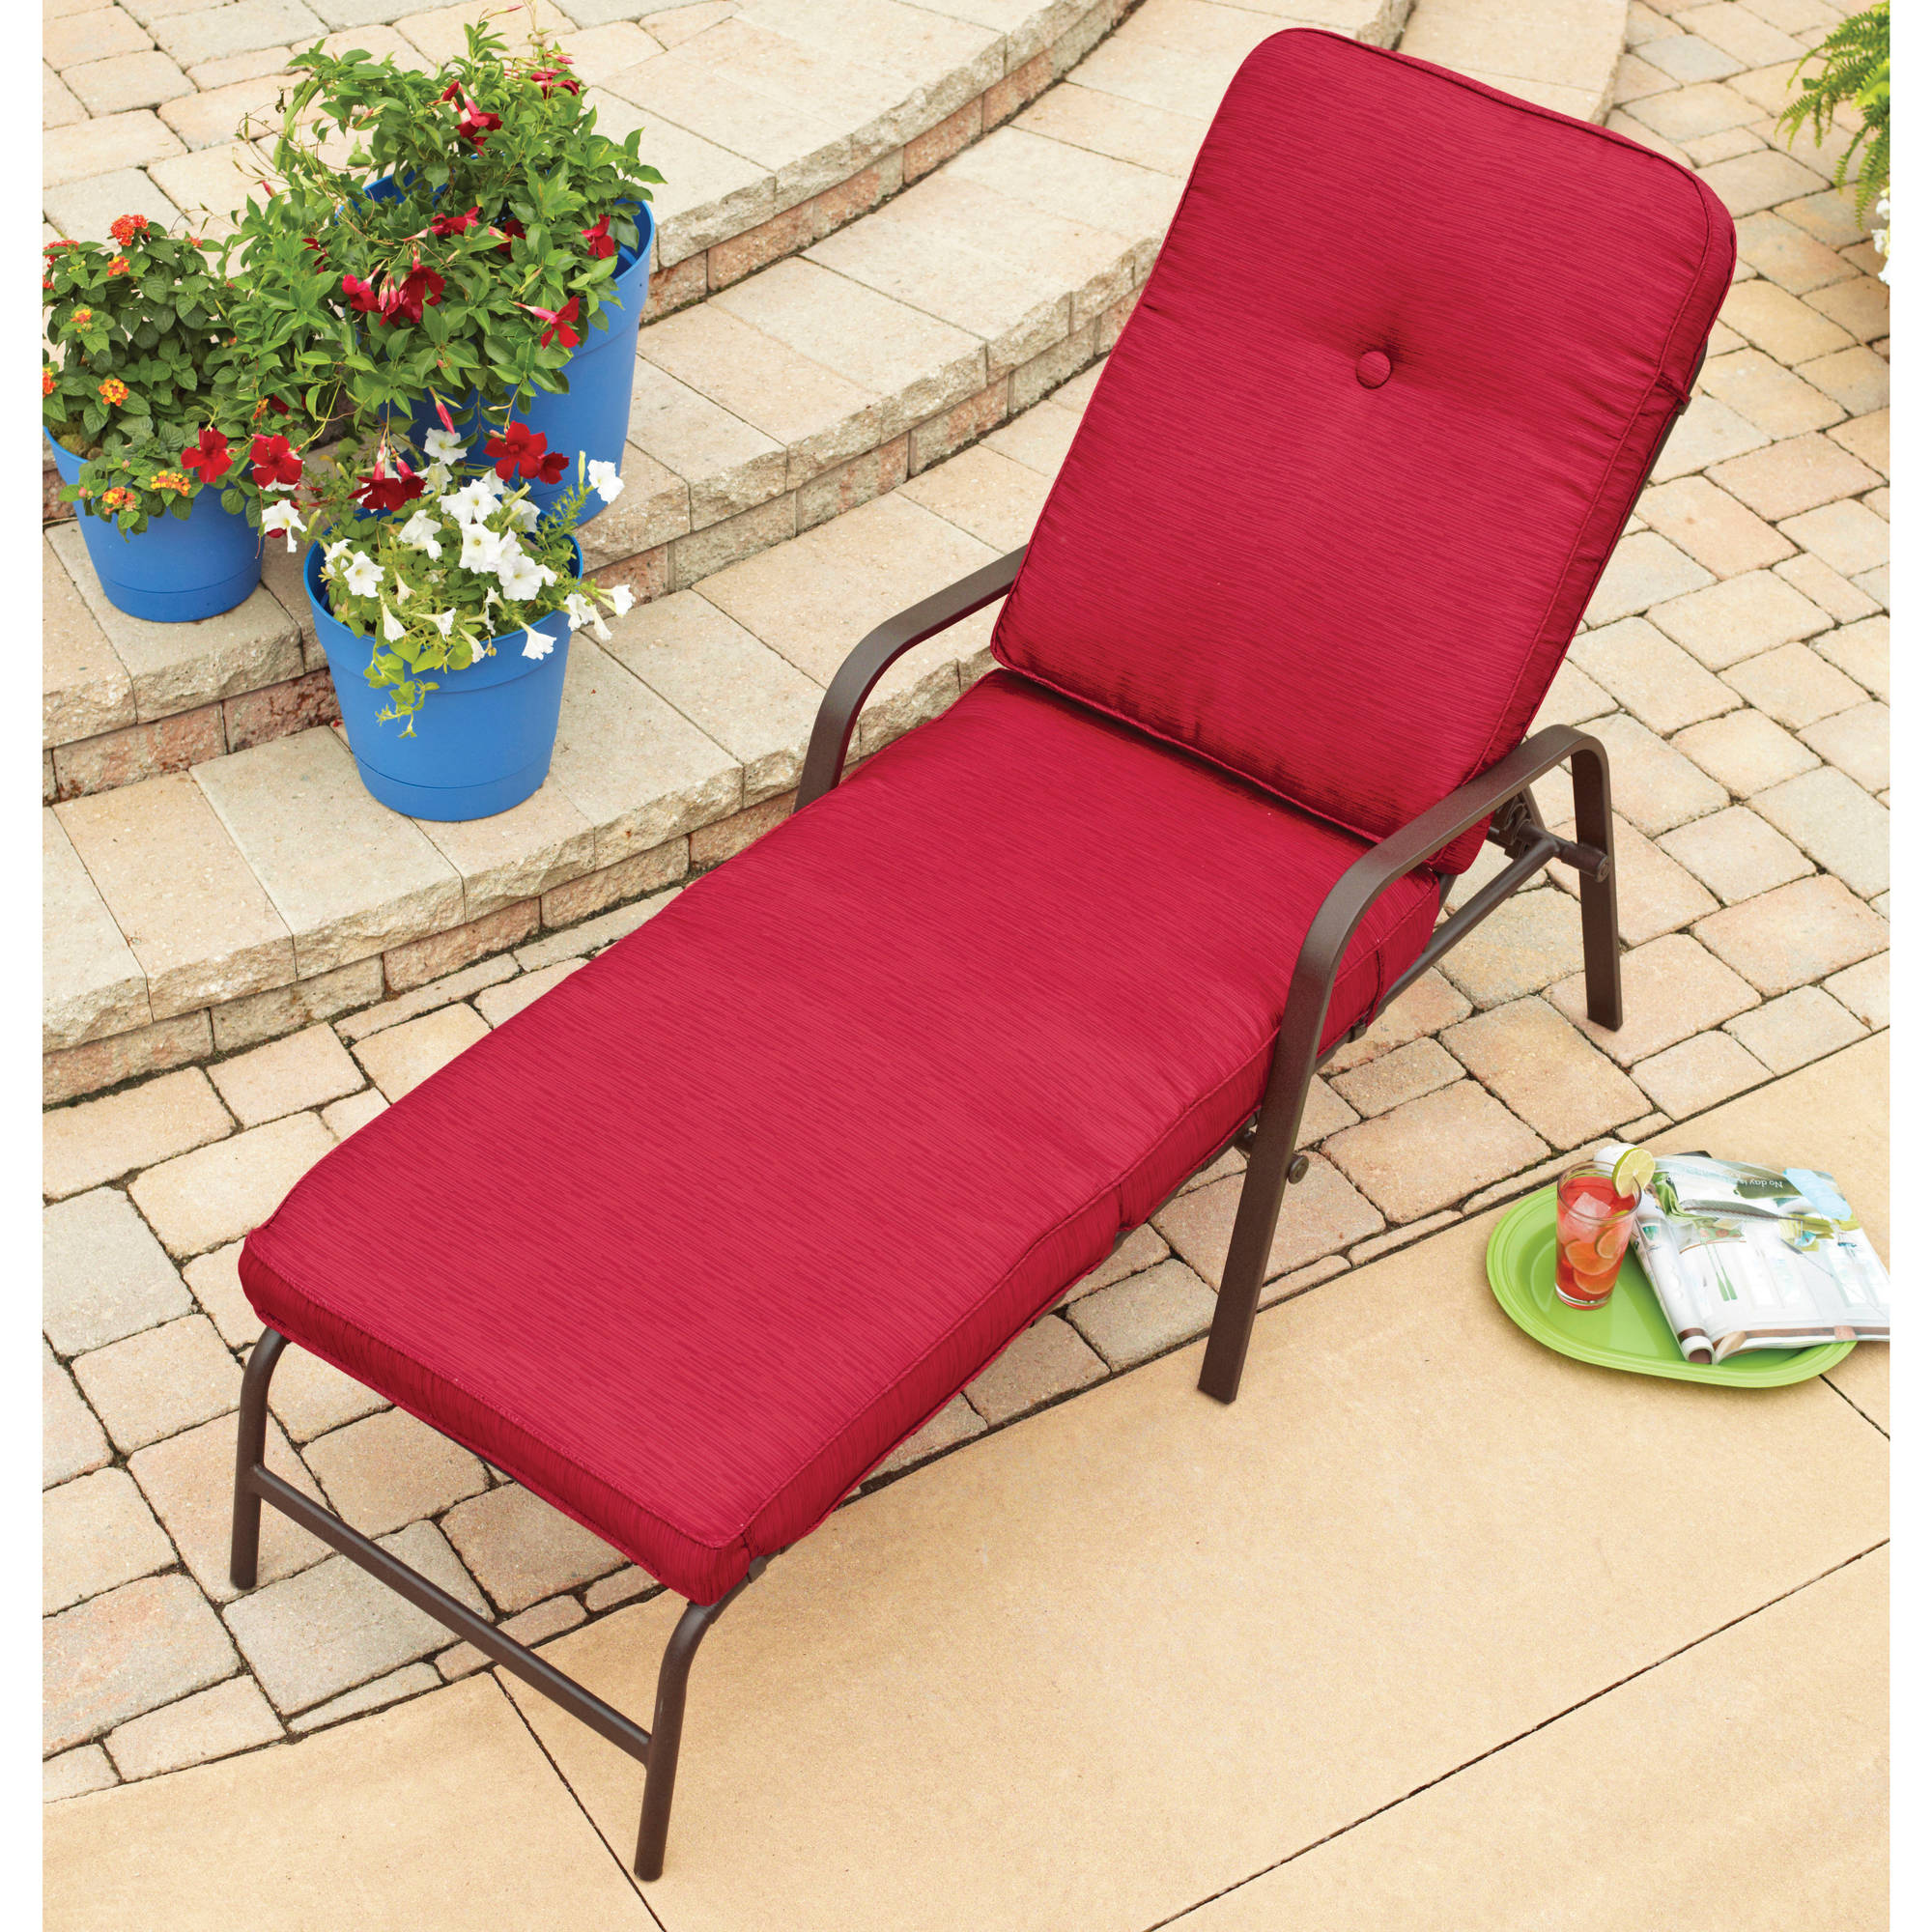 Mainstays Deluxe Orbit Chaise Lounge with Umbrella & Side Table